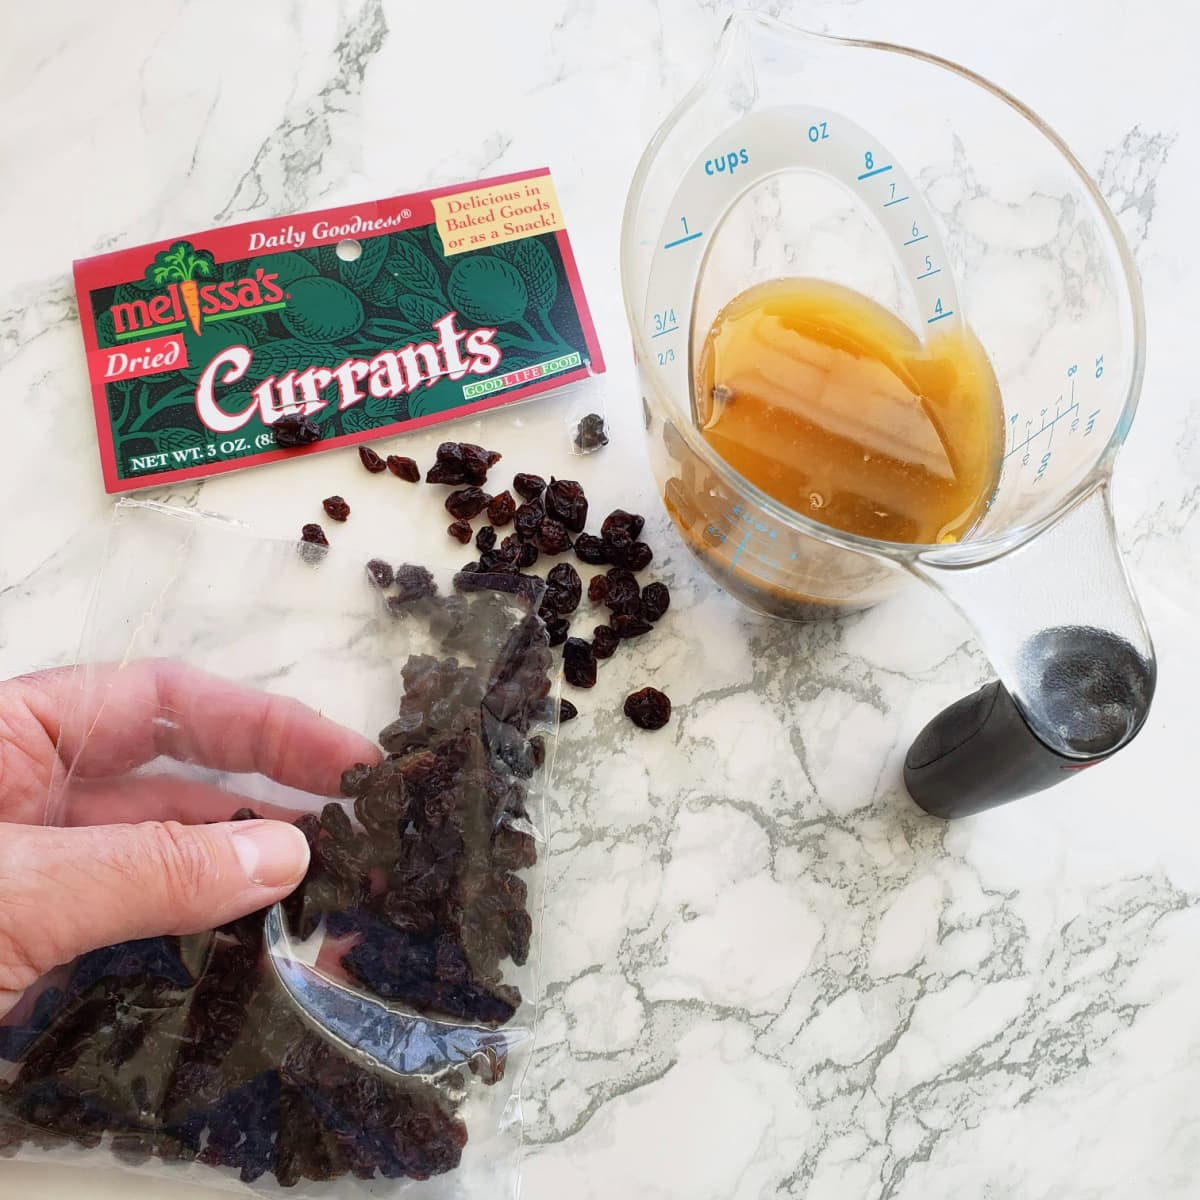 Currants will soak in tangerine juice in a measuring cup on a white marble counter